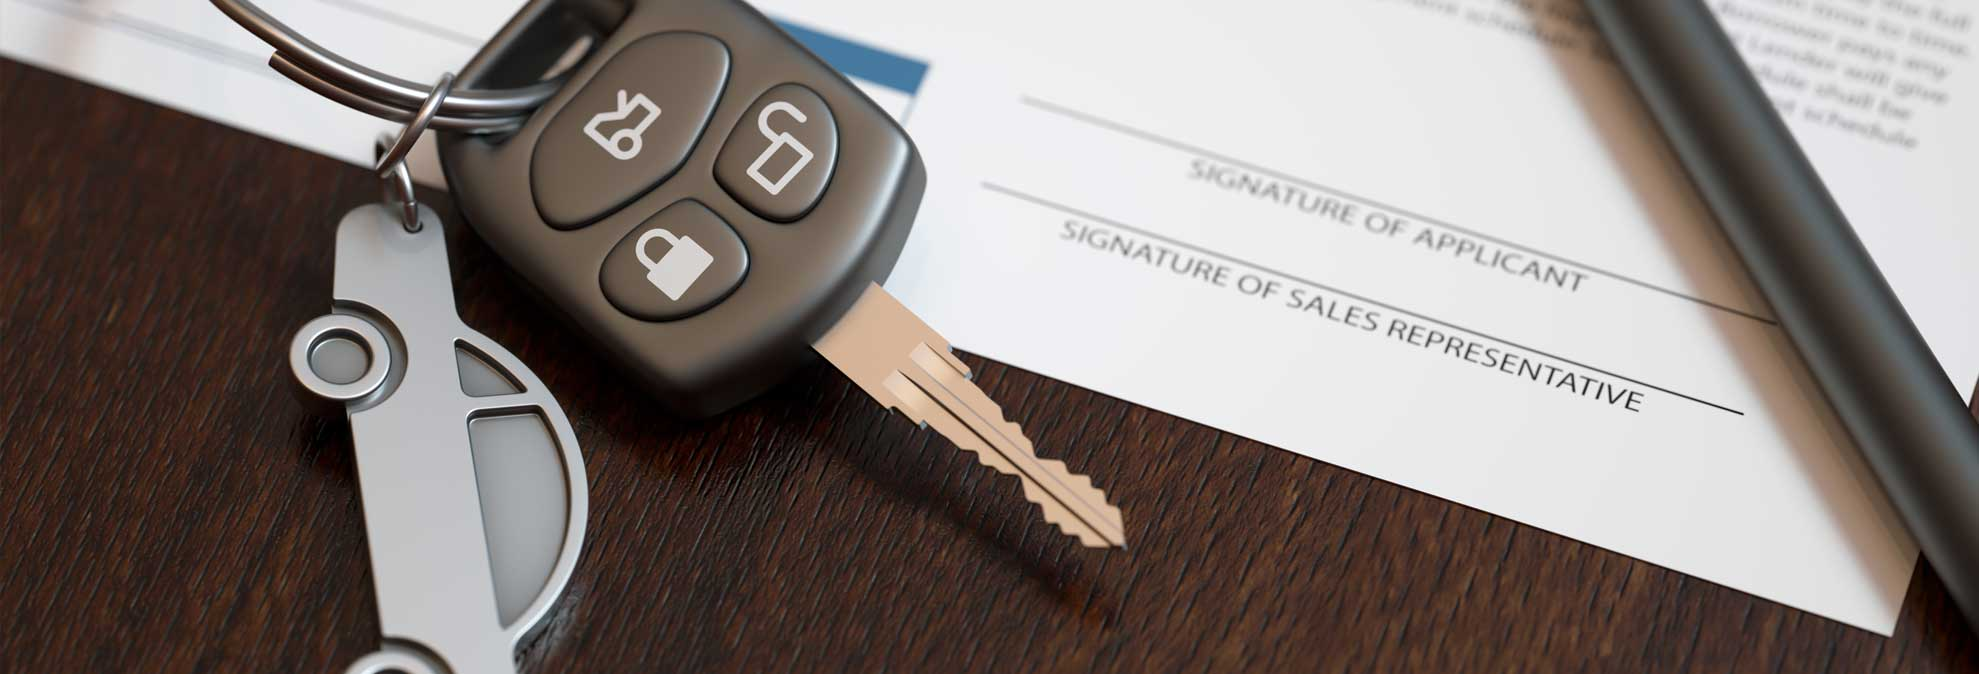 How can I get my money back from the car dealership?? warranty refund?